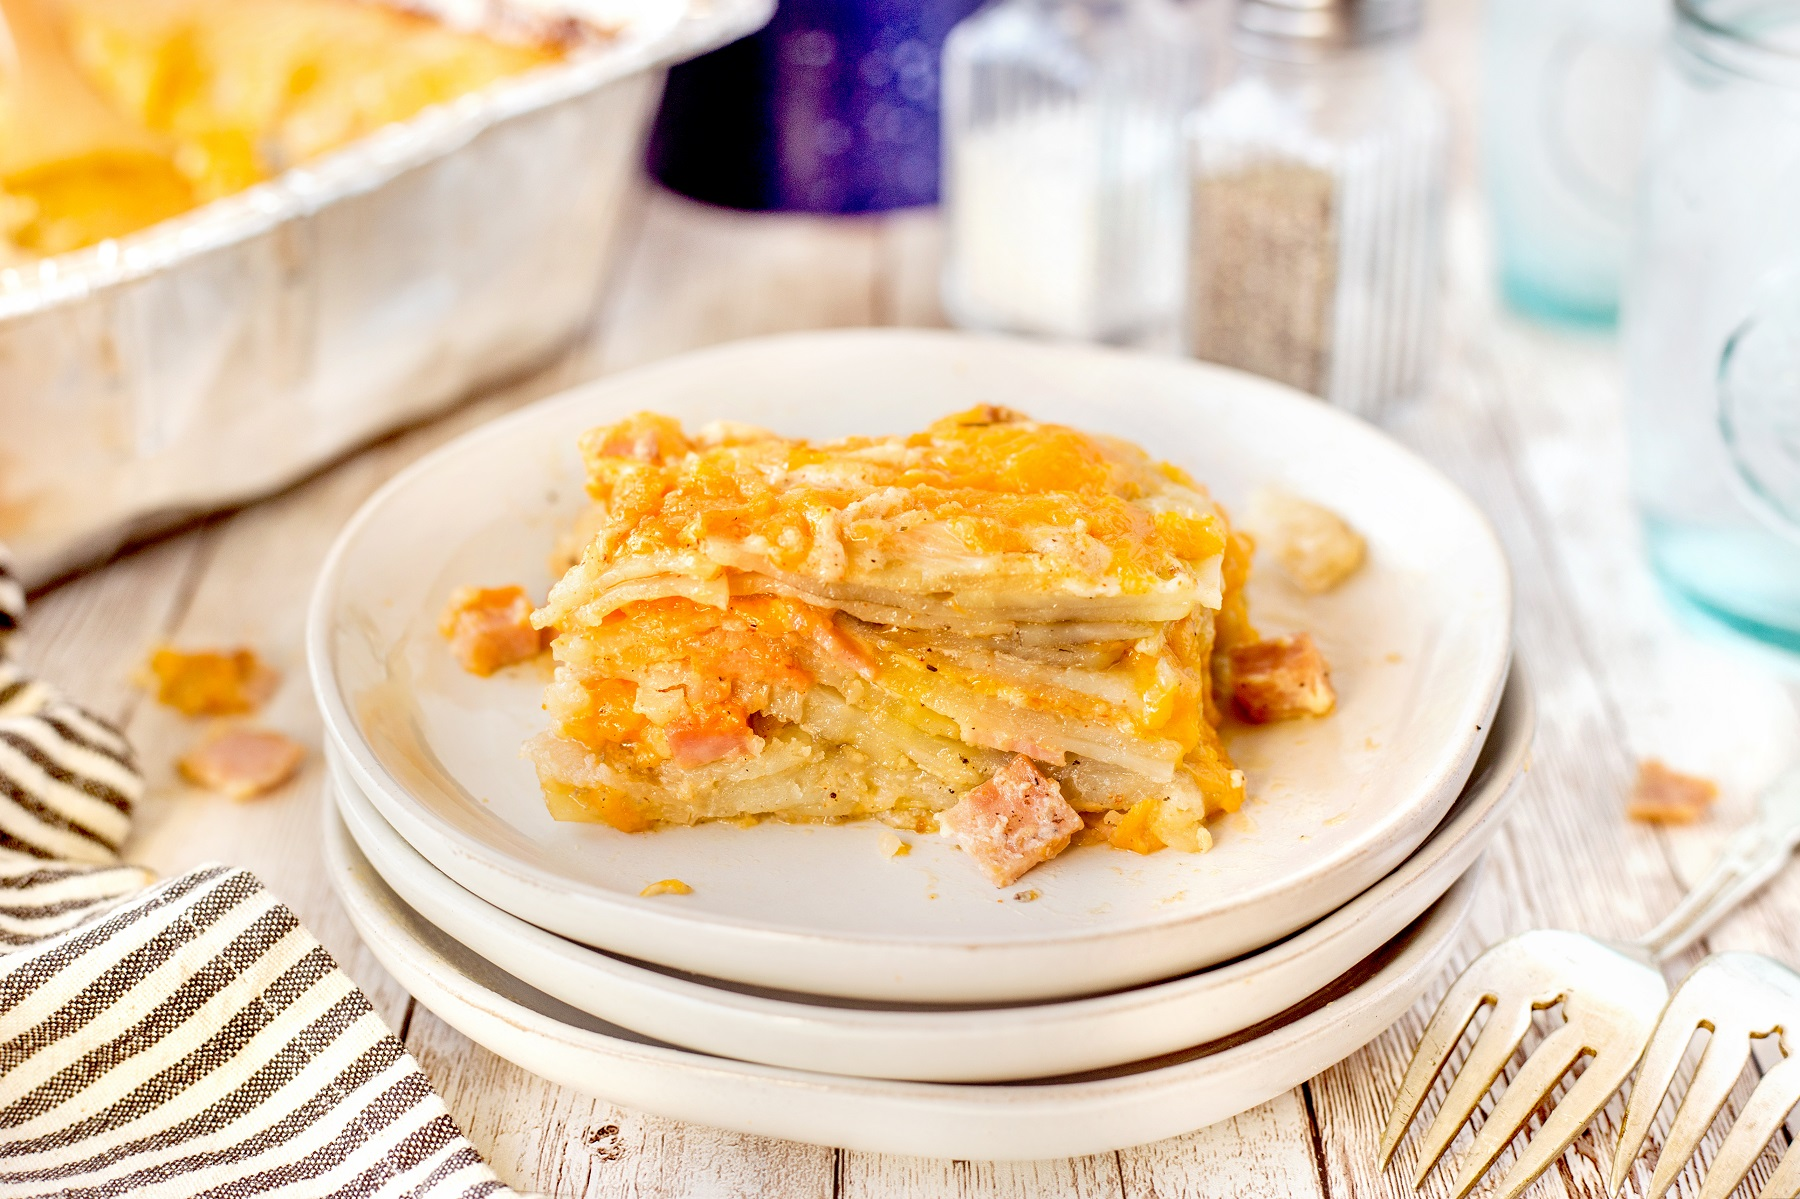 Square of smoked scalloped potatoes with ham on a white plate with forks beside the plate